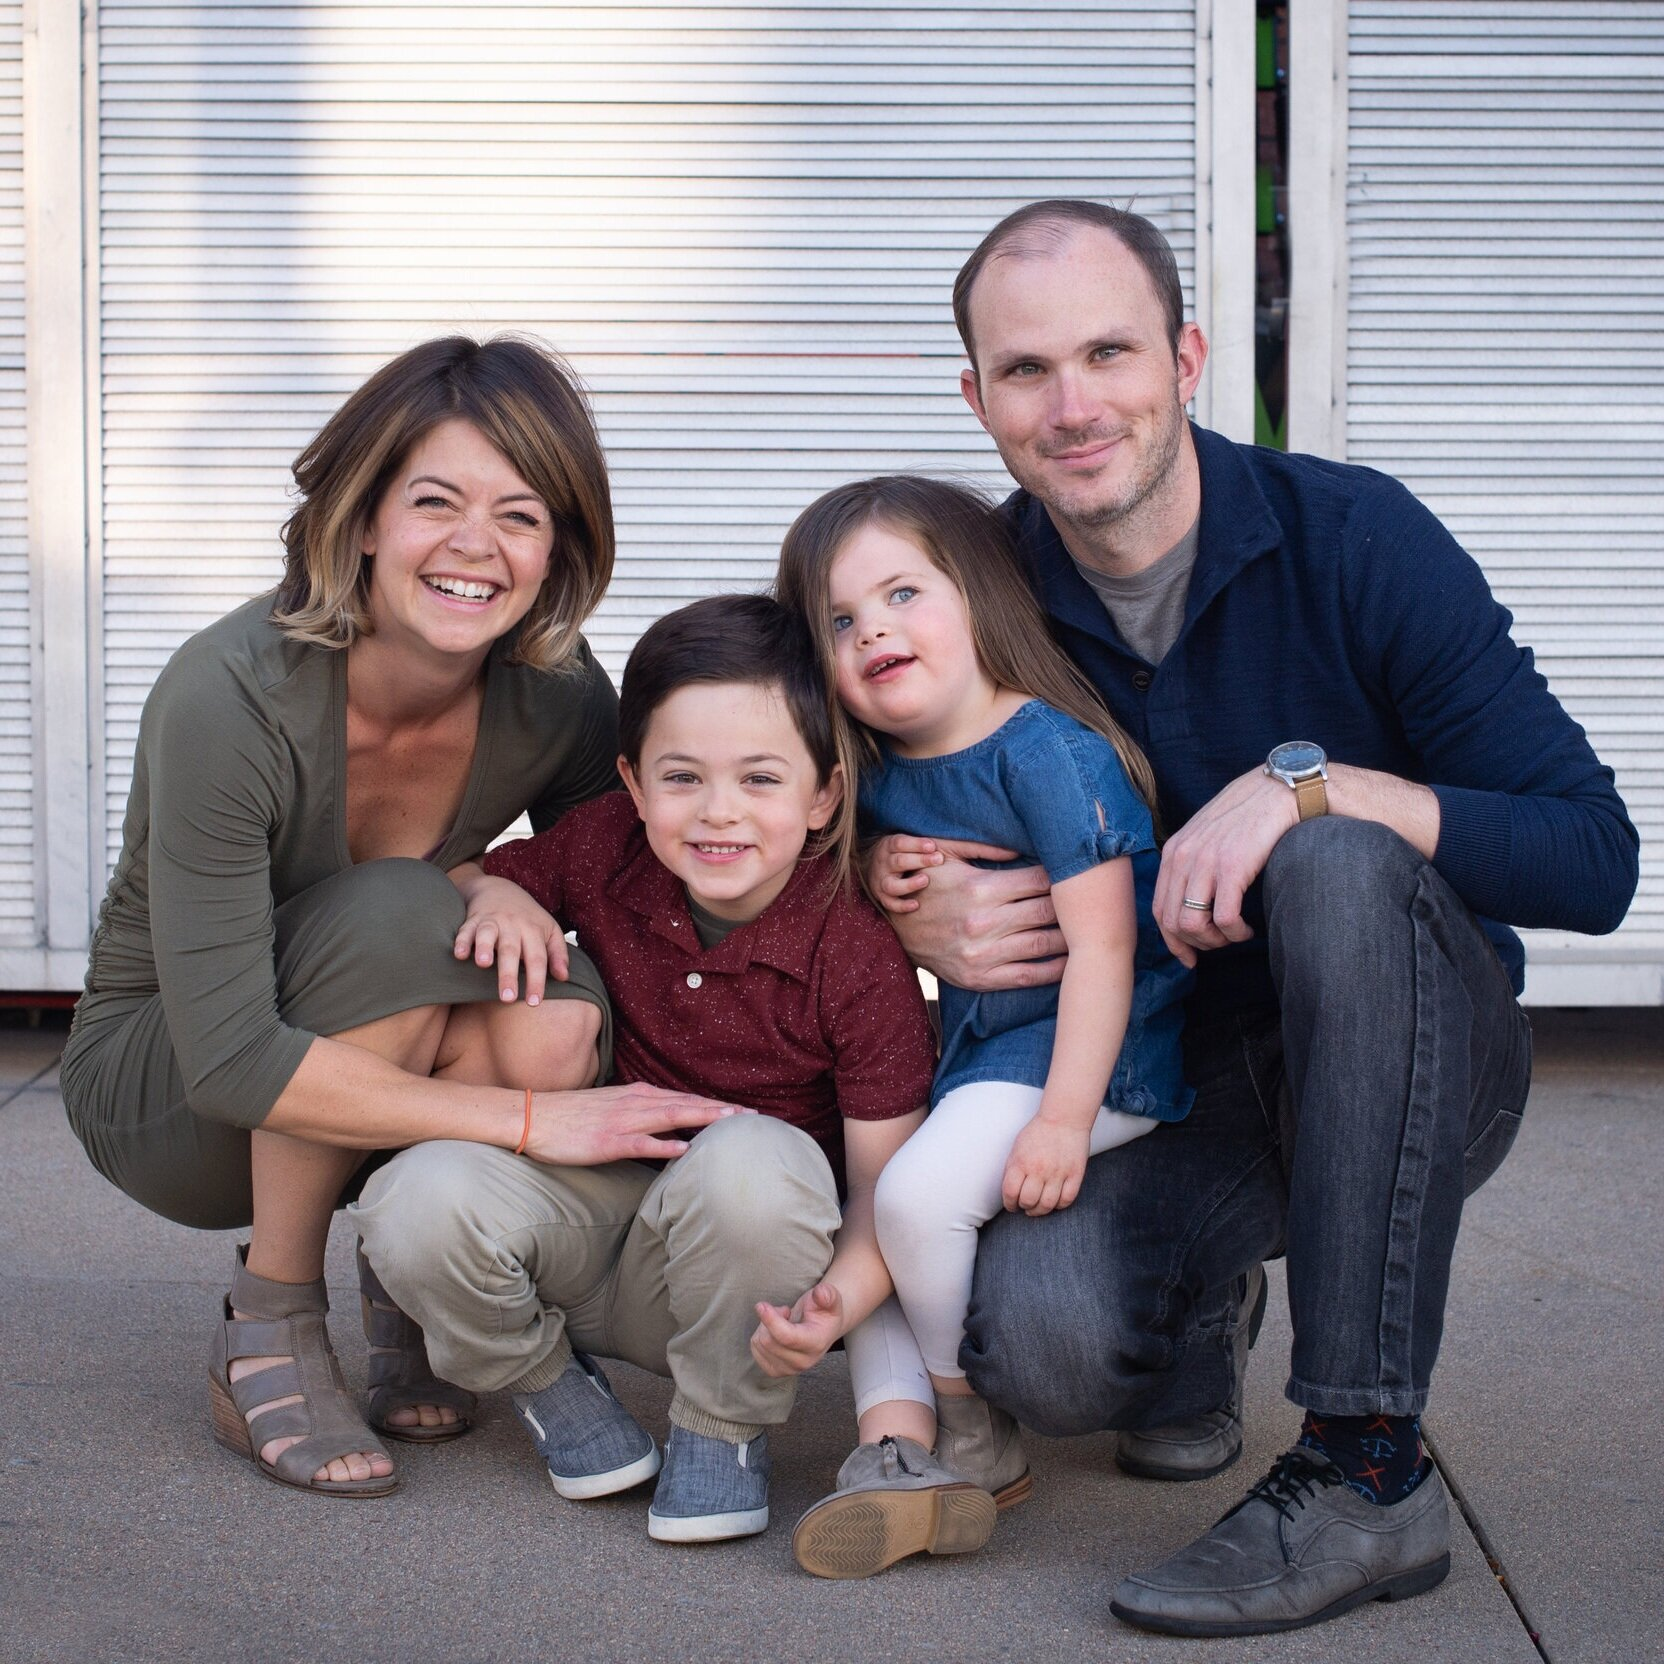 Family+of+4+at+my+studio+in+complimentary+fall+colors